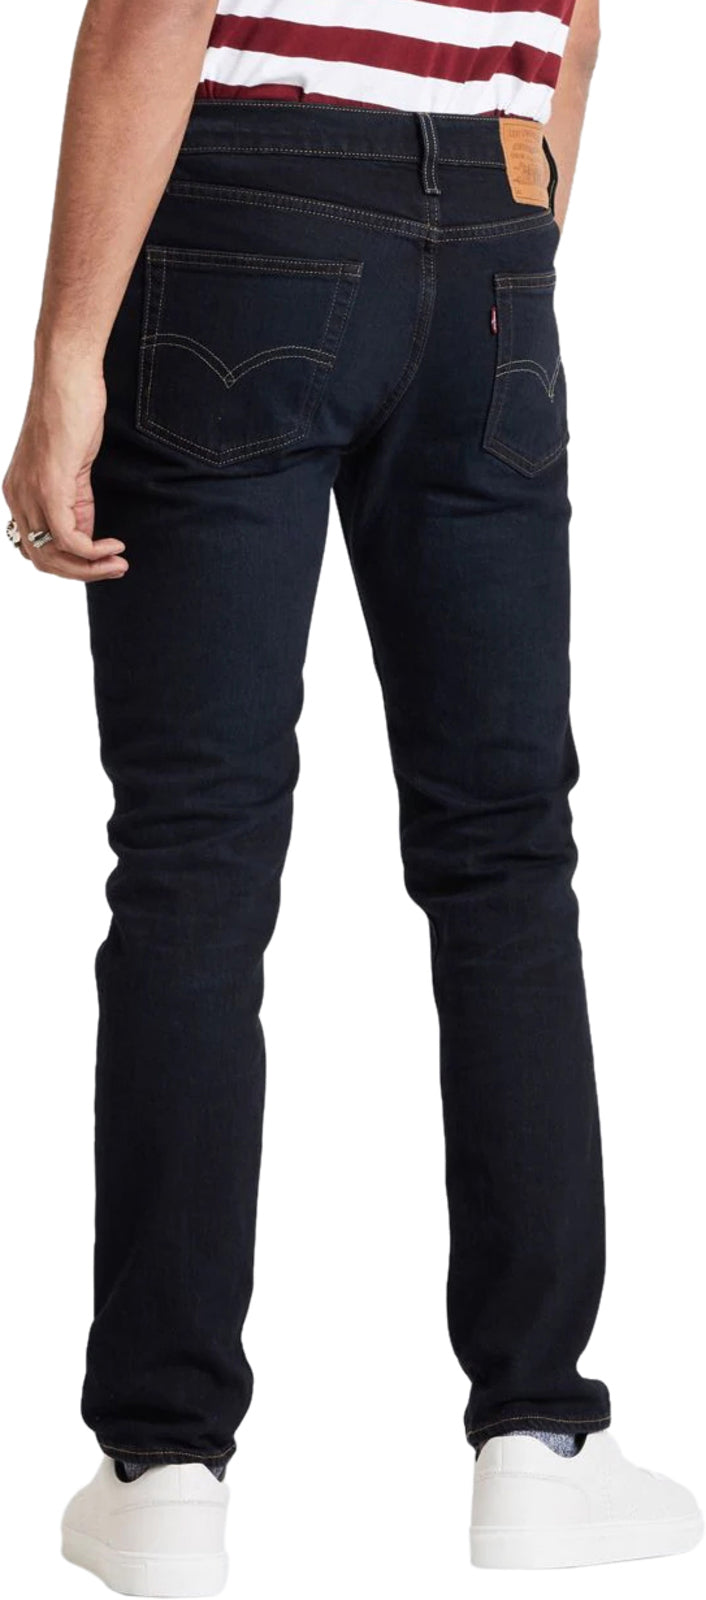 Levis-511-Slim-Fit-Denim-Jeans-Durian Dark Blue